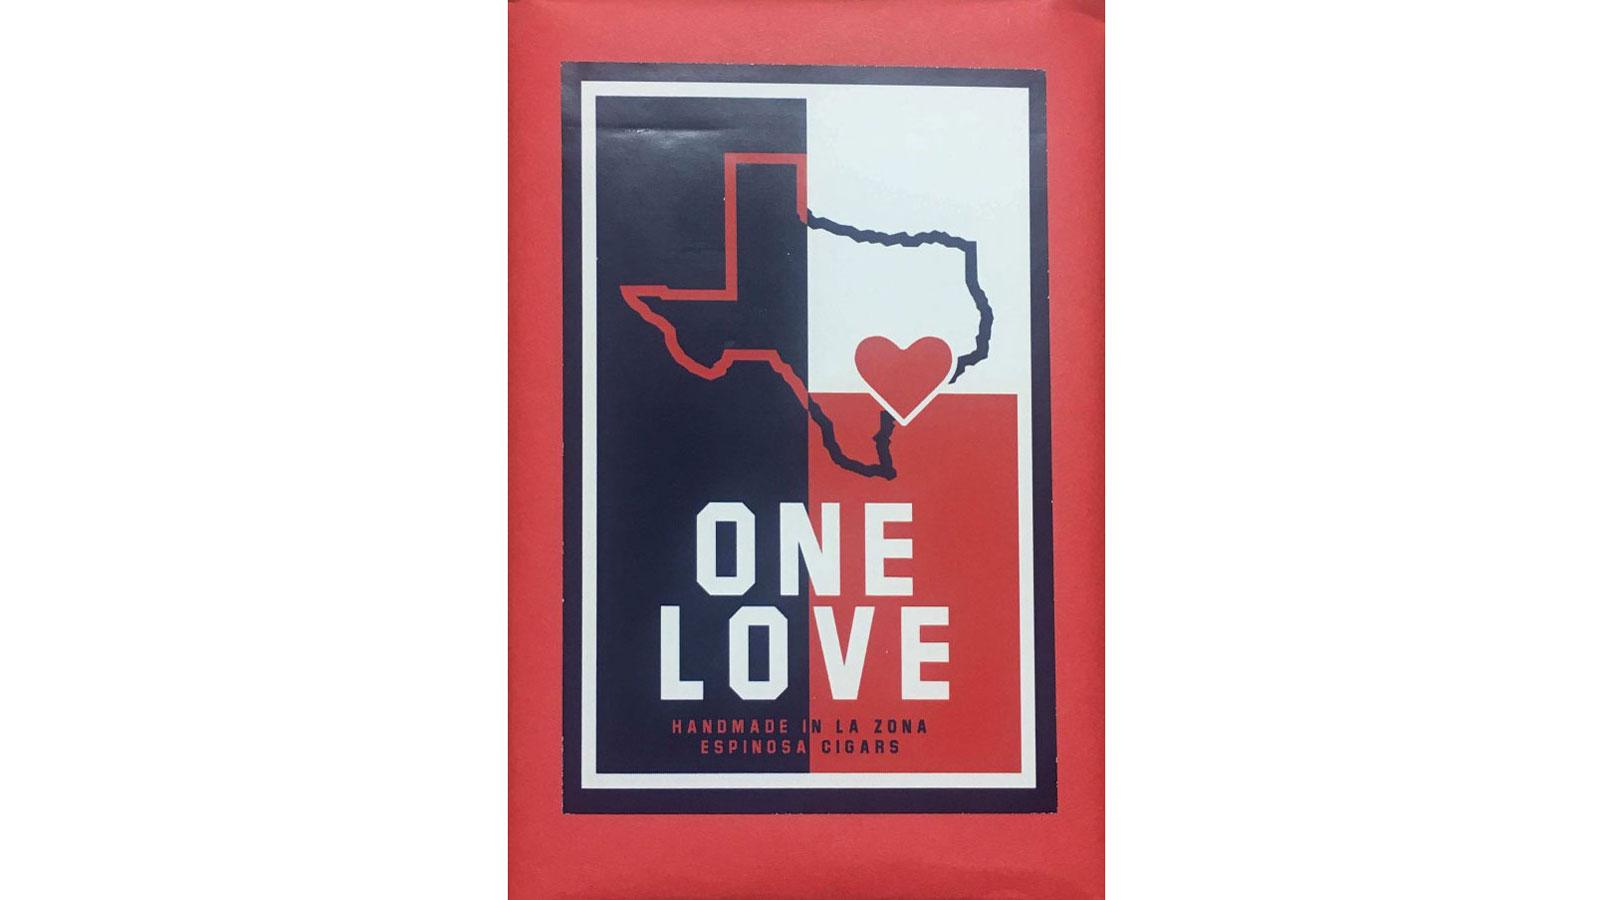 Espinosa's One Love five pack raised $5000 for hurricane relief.